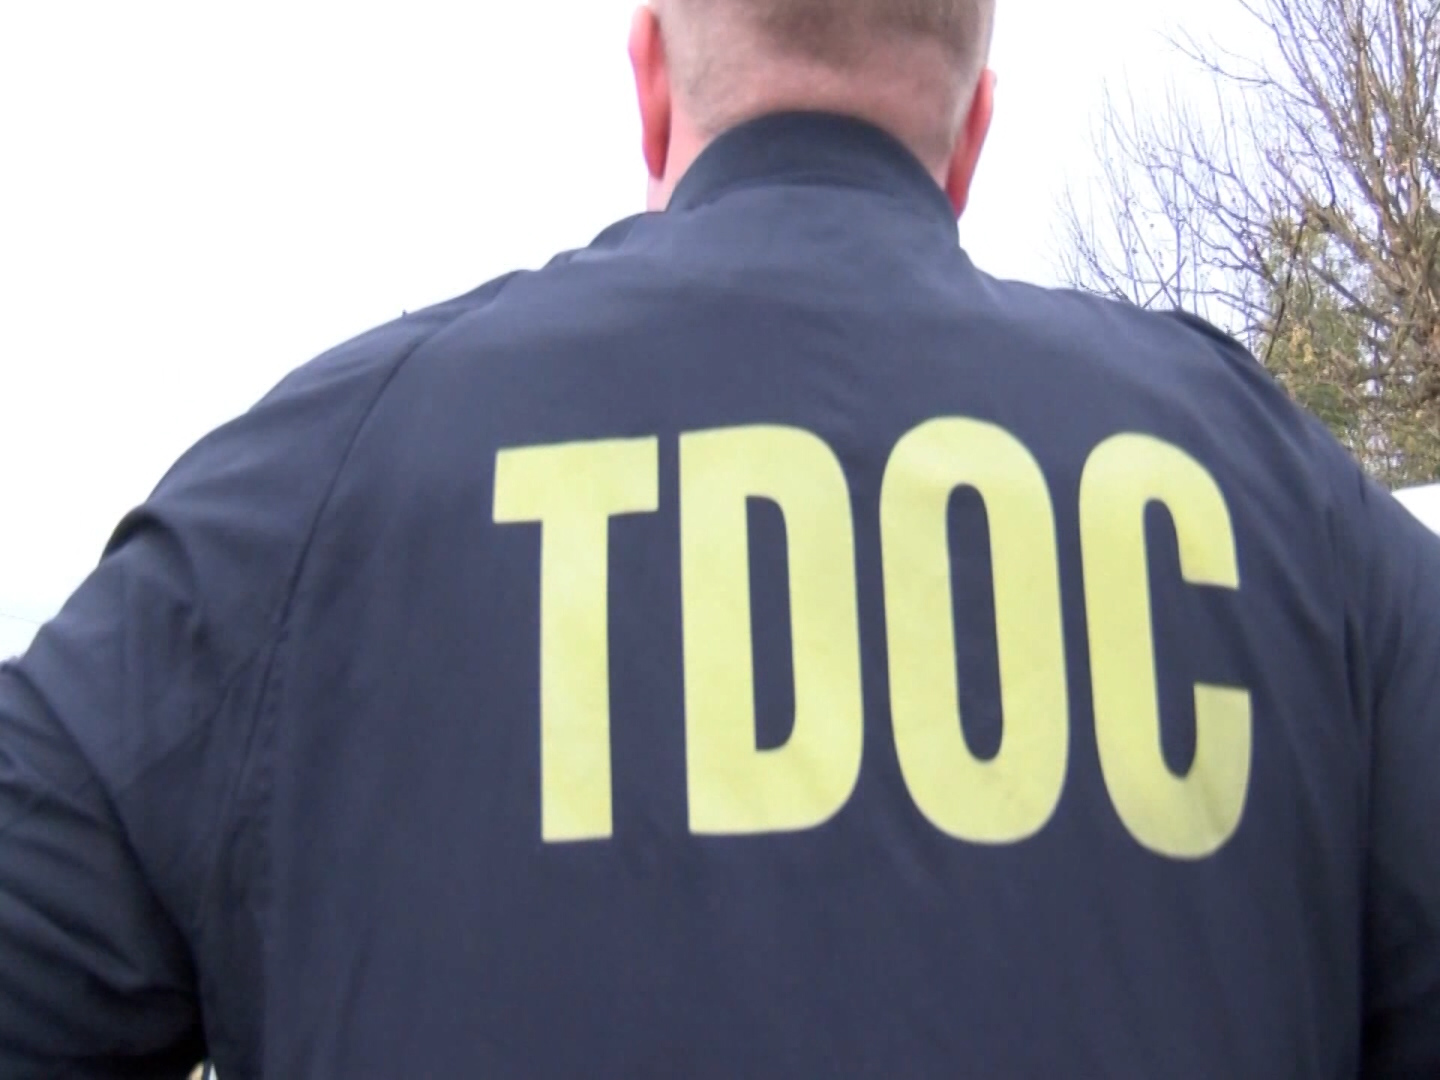 More than 3,700 TDOC convicts at large